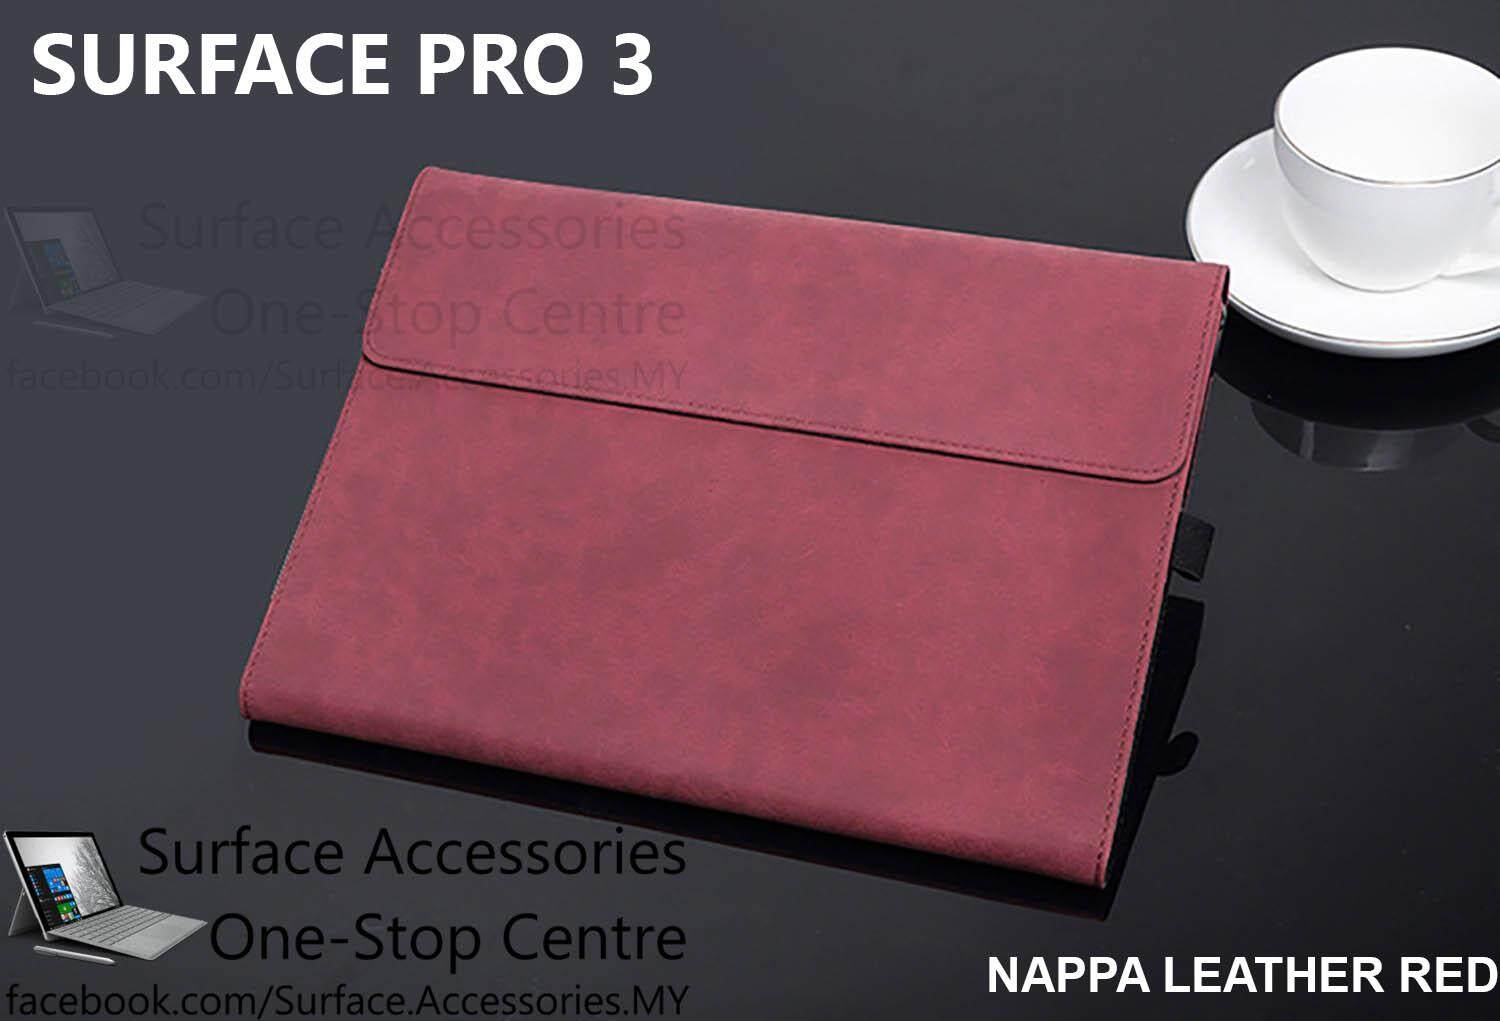 [MALAYSIA]Microsoft Surface Pro 3 Casing Surface Pro 3 Cover Premium Ultimate Case Stand Flip Case